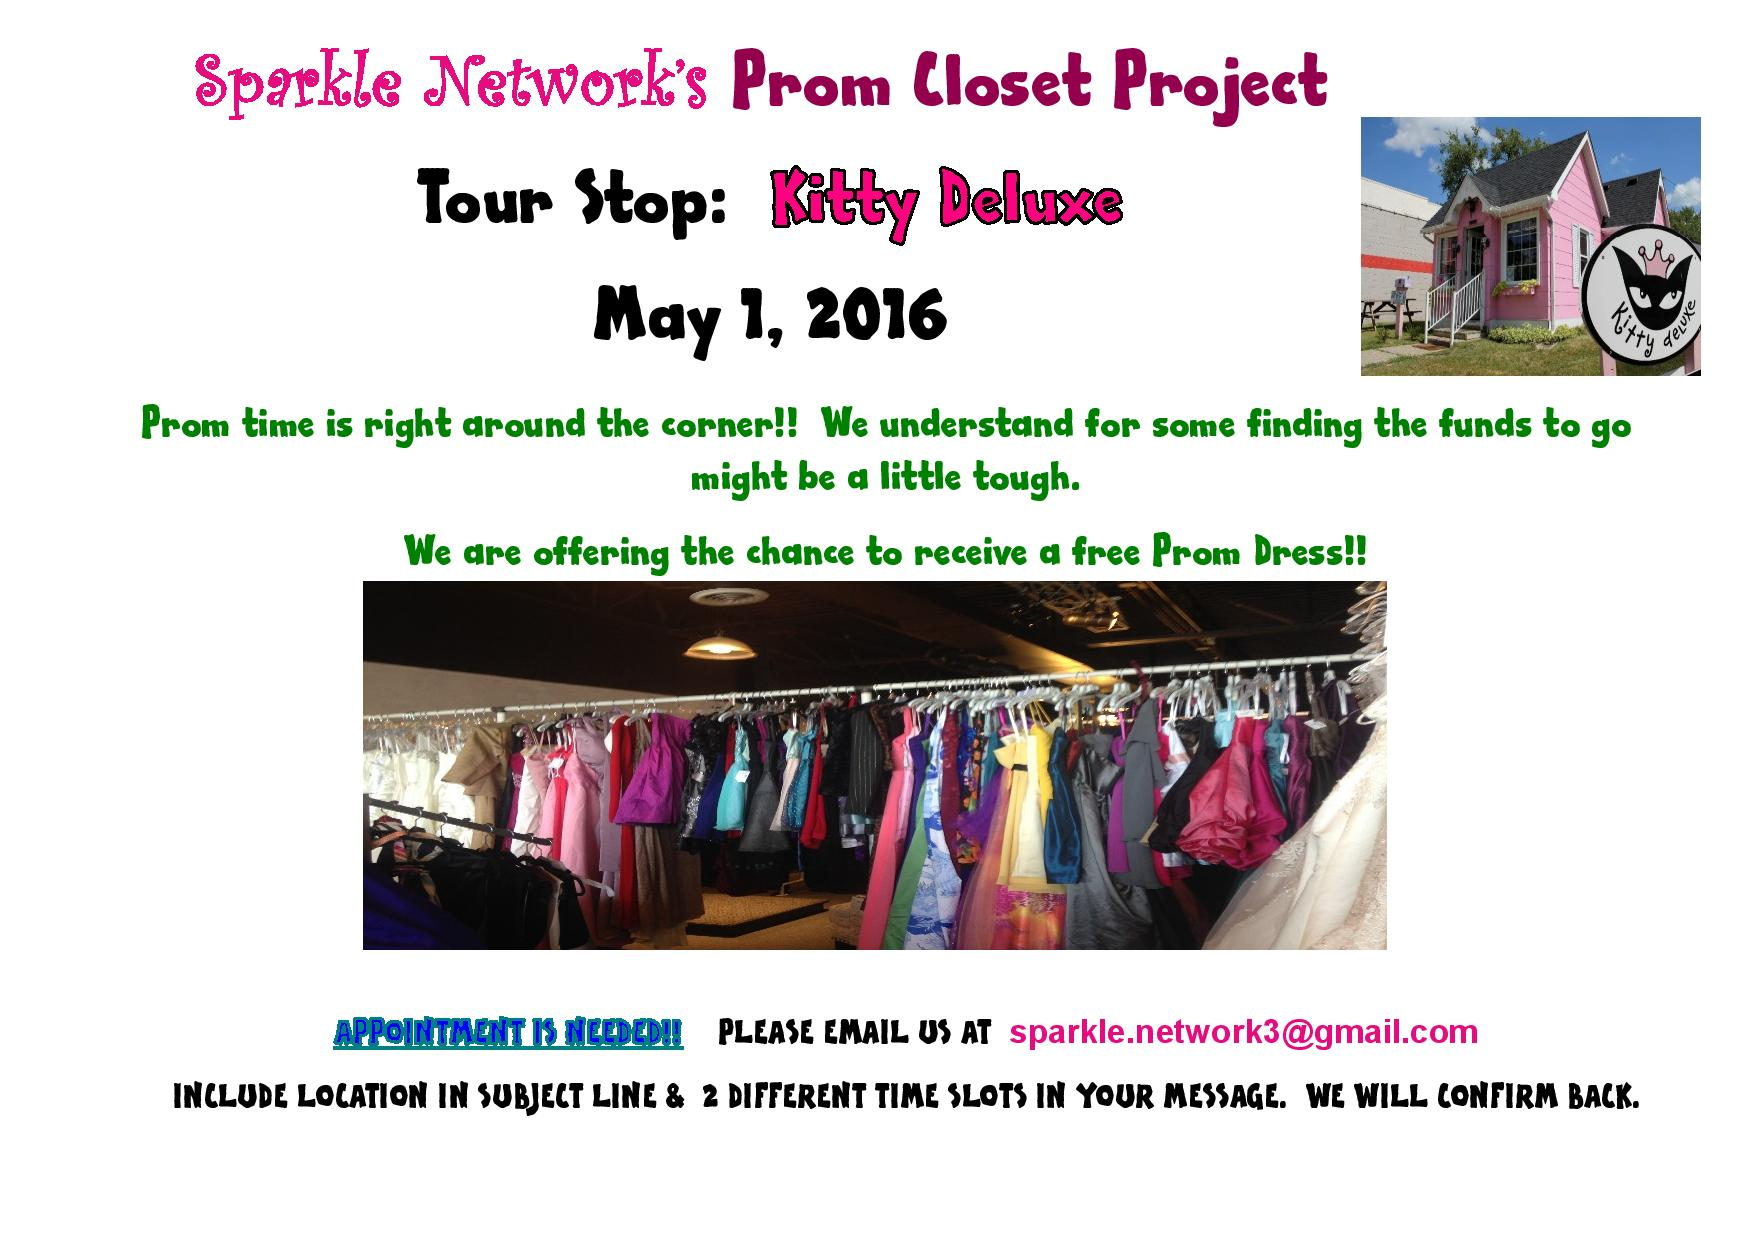 prom closet project kitty deluxe  stop-page-001